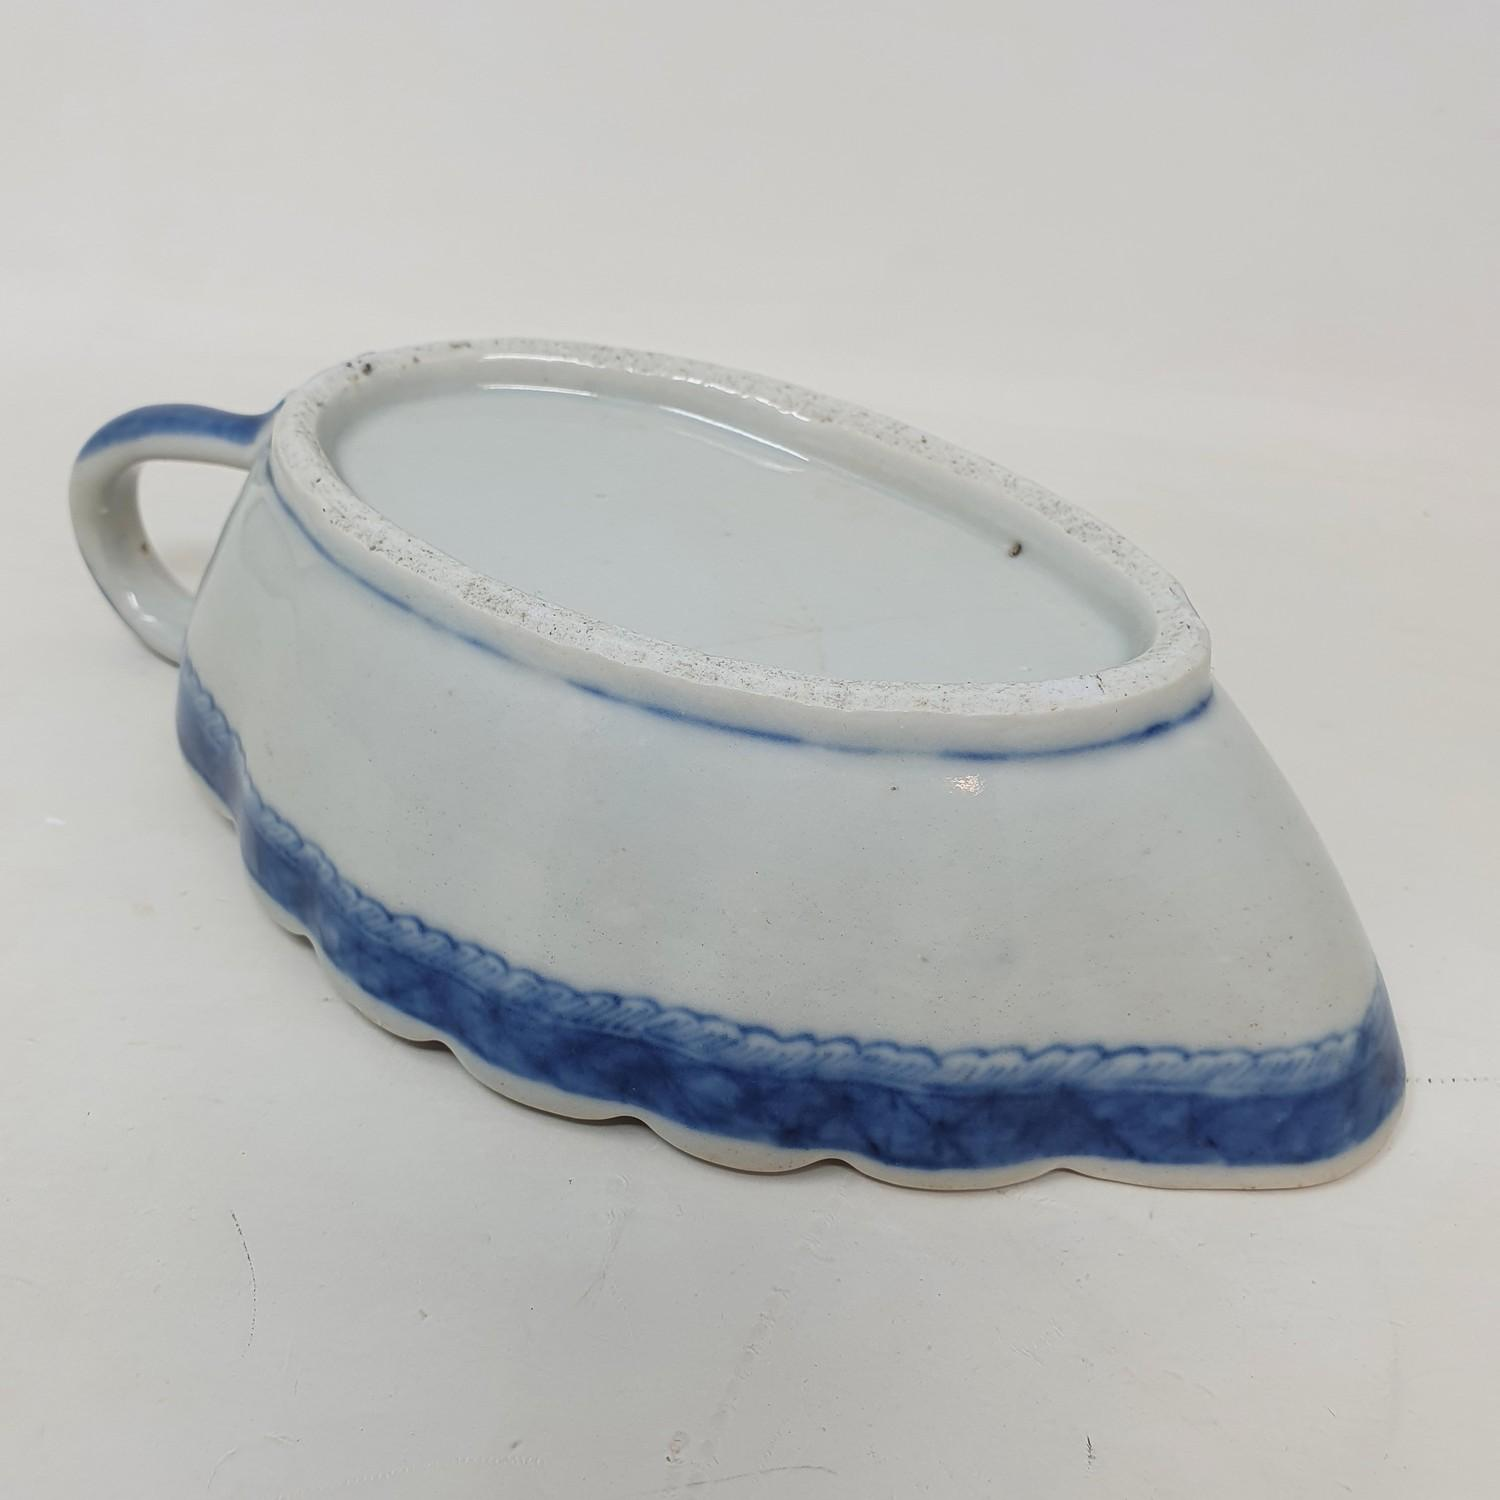 A Chinese blue and white sauceboat, 20 cm wide - Image 3 of 3